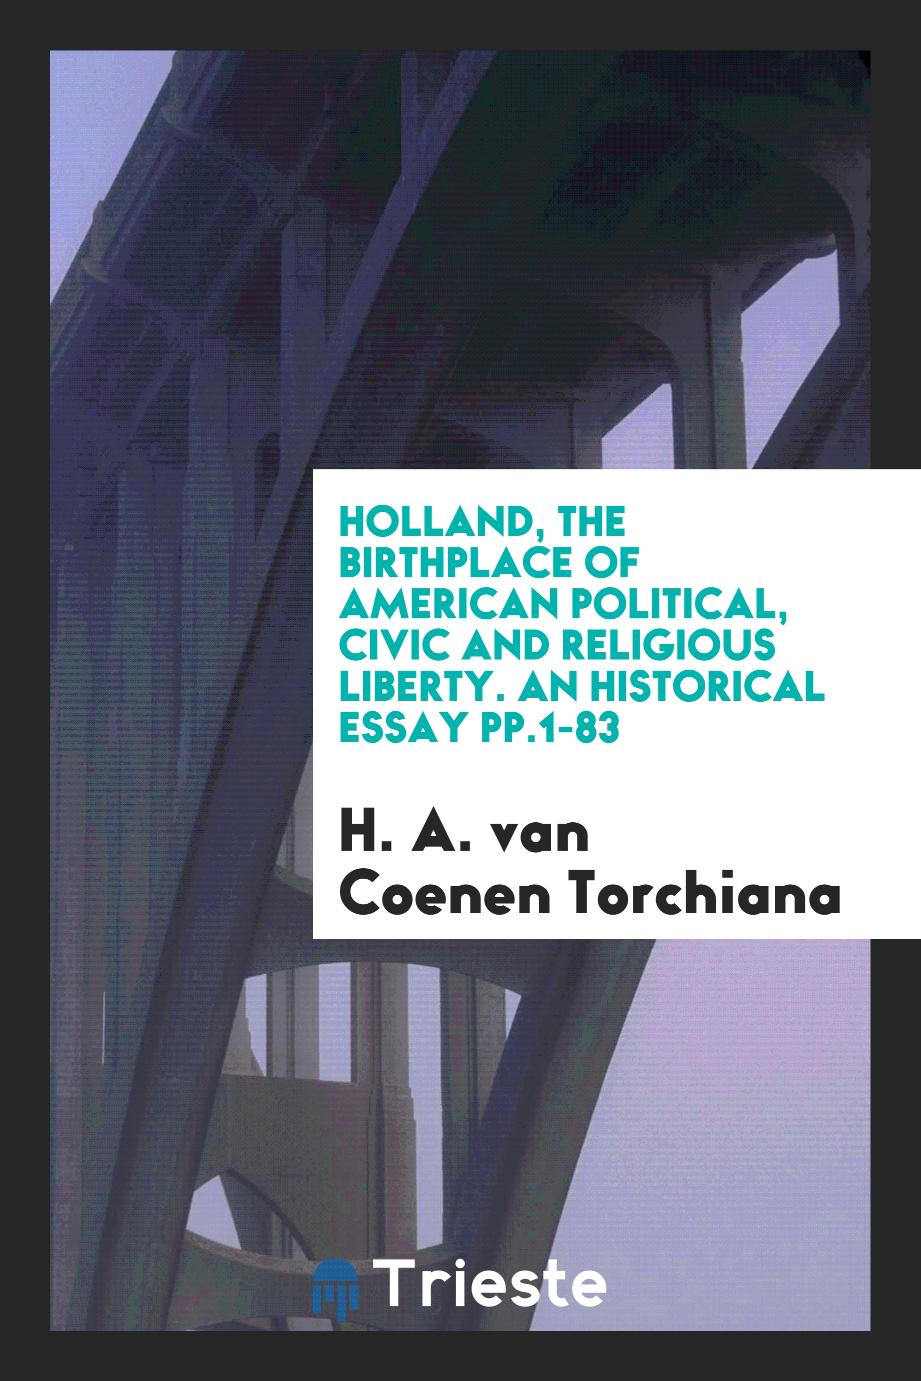 Holland, the Birthplace of American Political, Civic and Religious Liberty. An Historical Essay pp.1-83